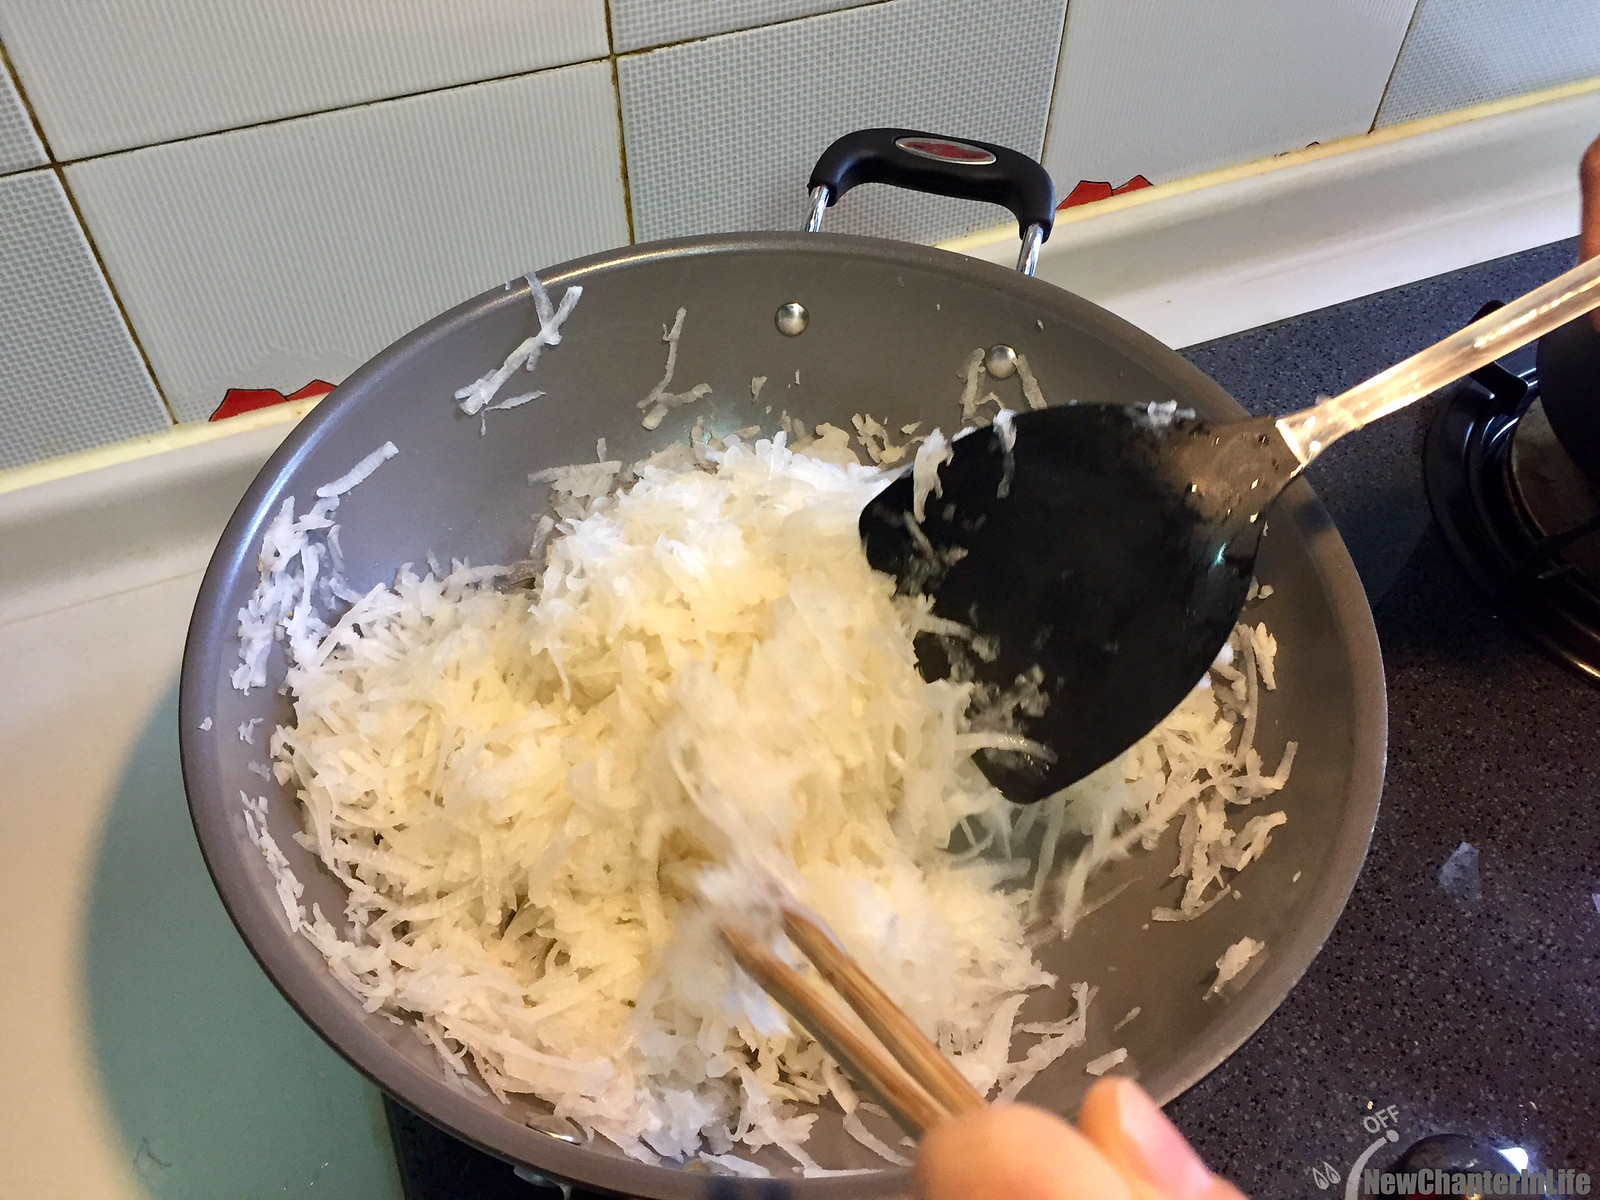 Mix the shredded turnip with sugar, salt, white pepper and chicken powder  起鑊炒香蘿蔔絲,加入砂糖、鹽、胡椒粉、雞粉